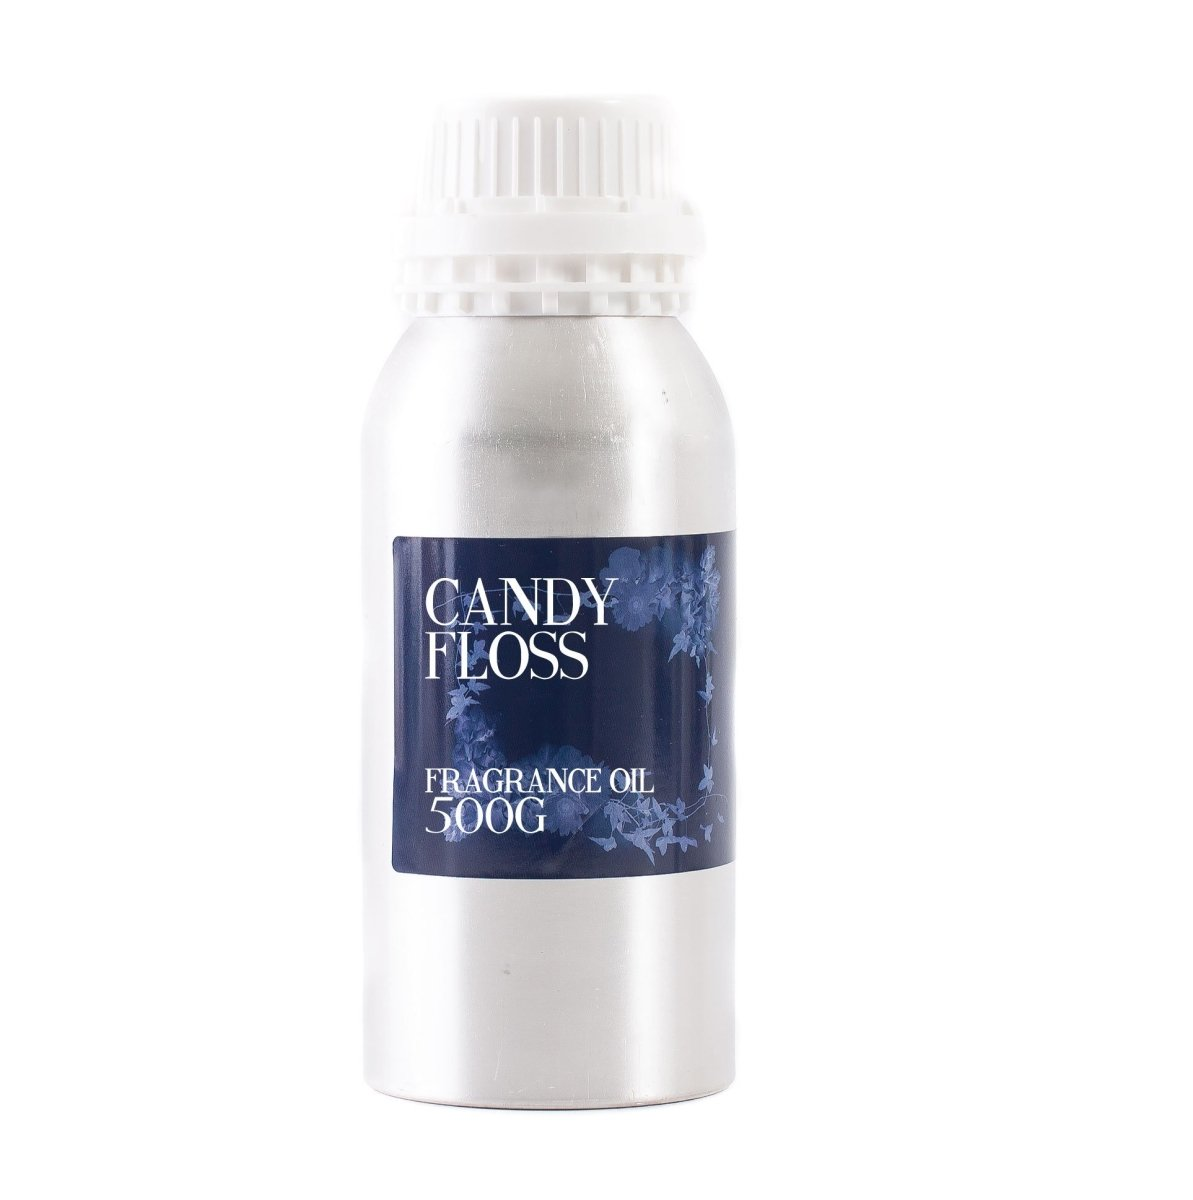 Candy Floss Fragrance Oil - Mystic Moments UK